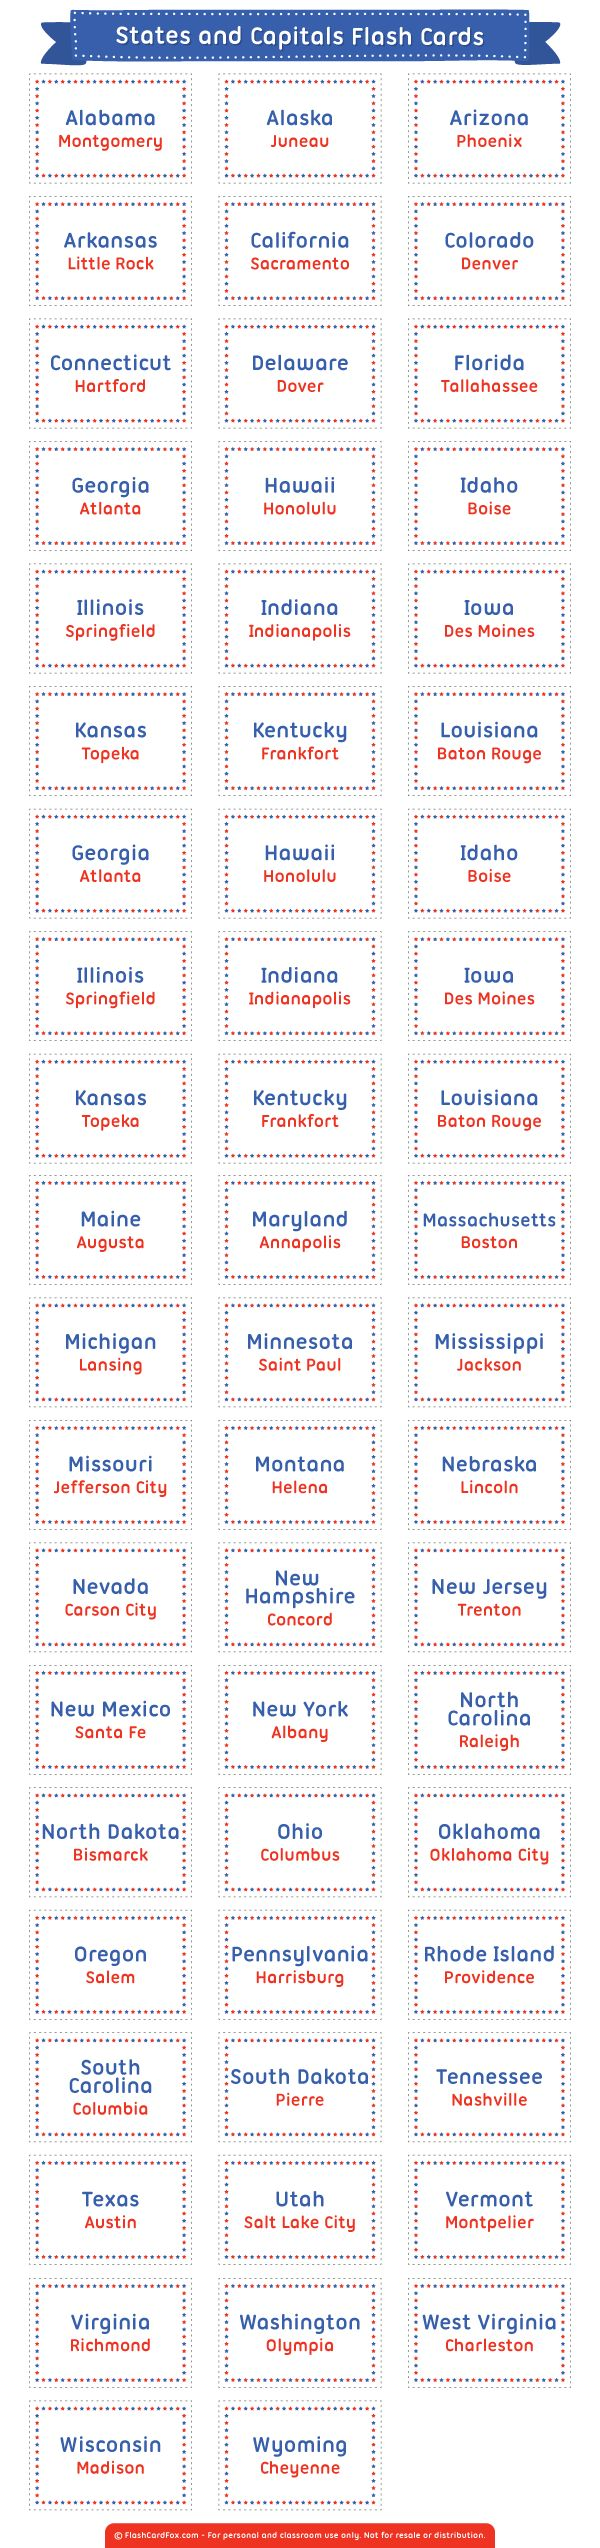 Free printable states and capitals flash cards. Download them in PDF format at http://flashcardfox.com/download/states-and-capitals-flash-cards/